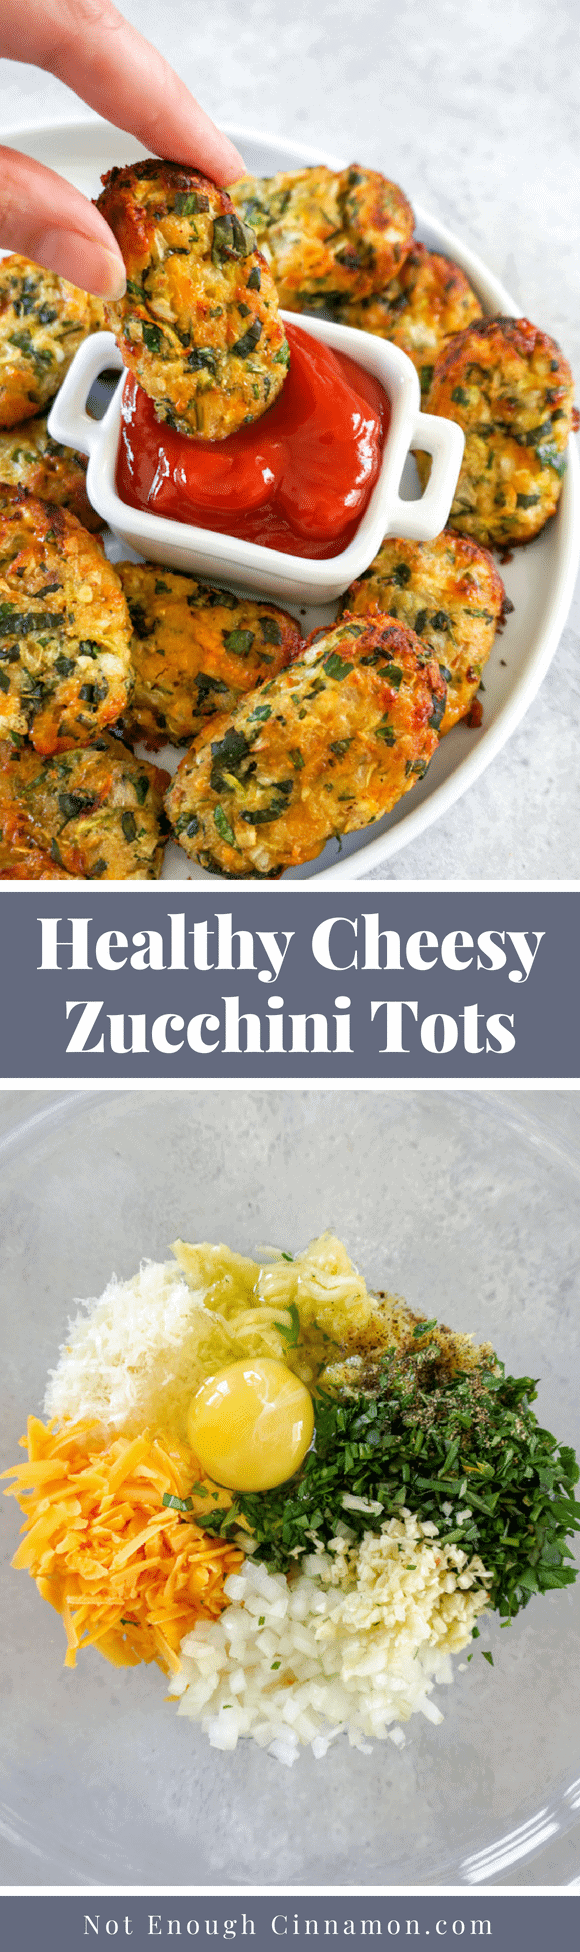 Cheesy baked zucchini tots made with grated zucchini, fresh herbs, cheddar, parmesan and breadcrumbs. Both kids and adults will love these! #Glutenfree too. Recipe on NotEnoughCinnamon.com #healthyrecipe #summerrecipe #tatertots